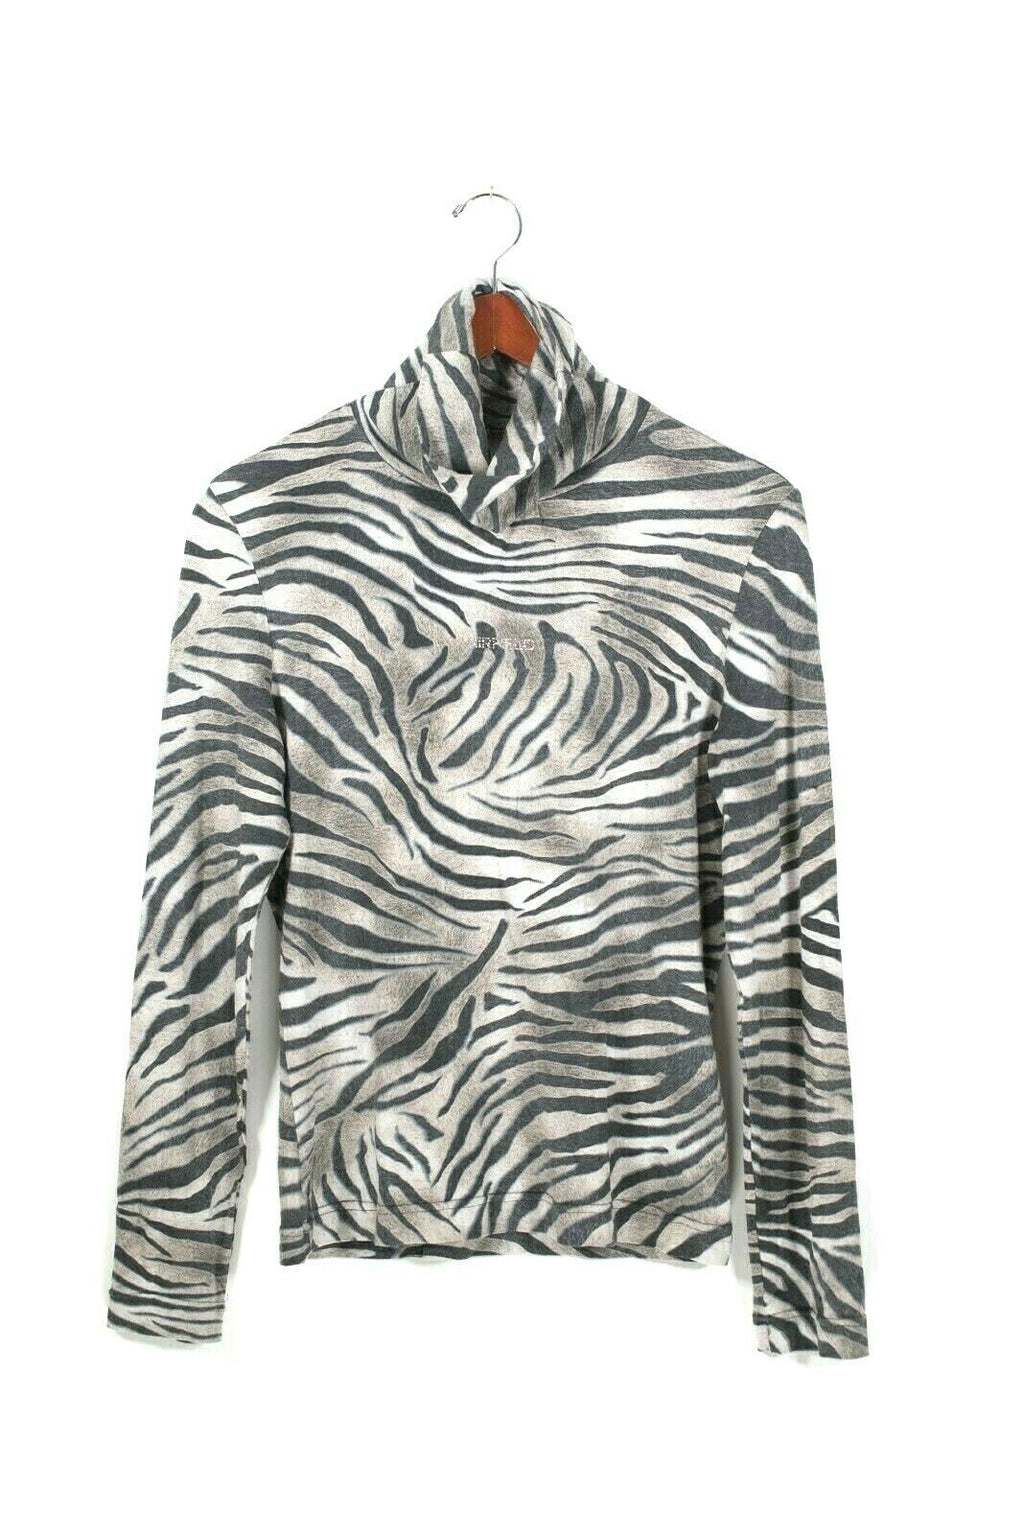 Airfield Size Medium Brown Black Turtleneck Zebra Stripe Pullover Shirt Top